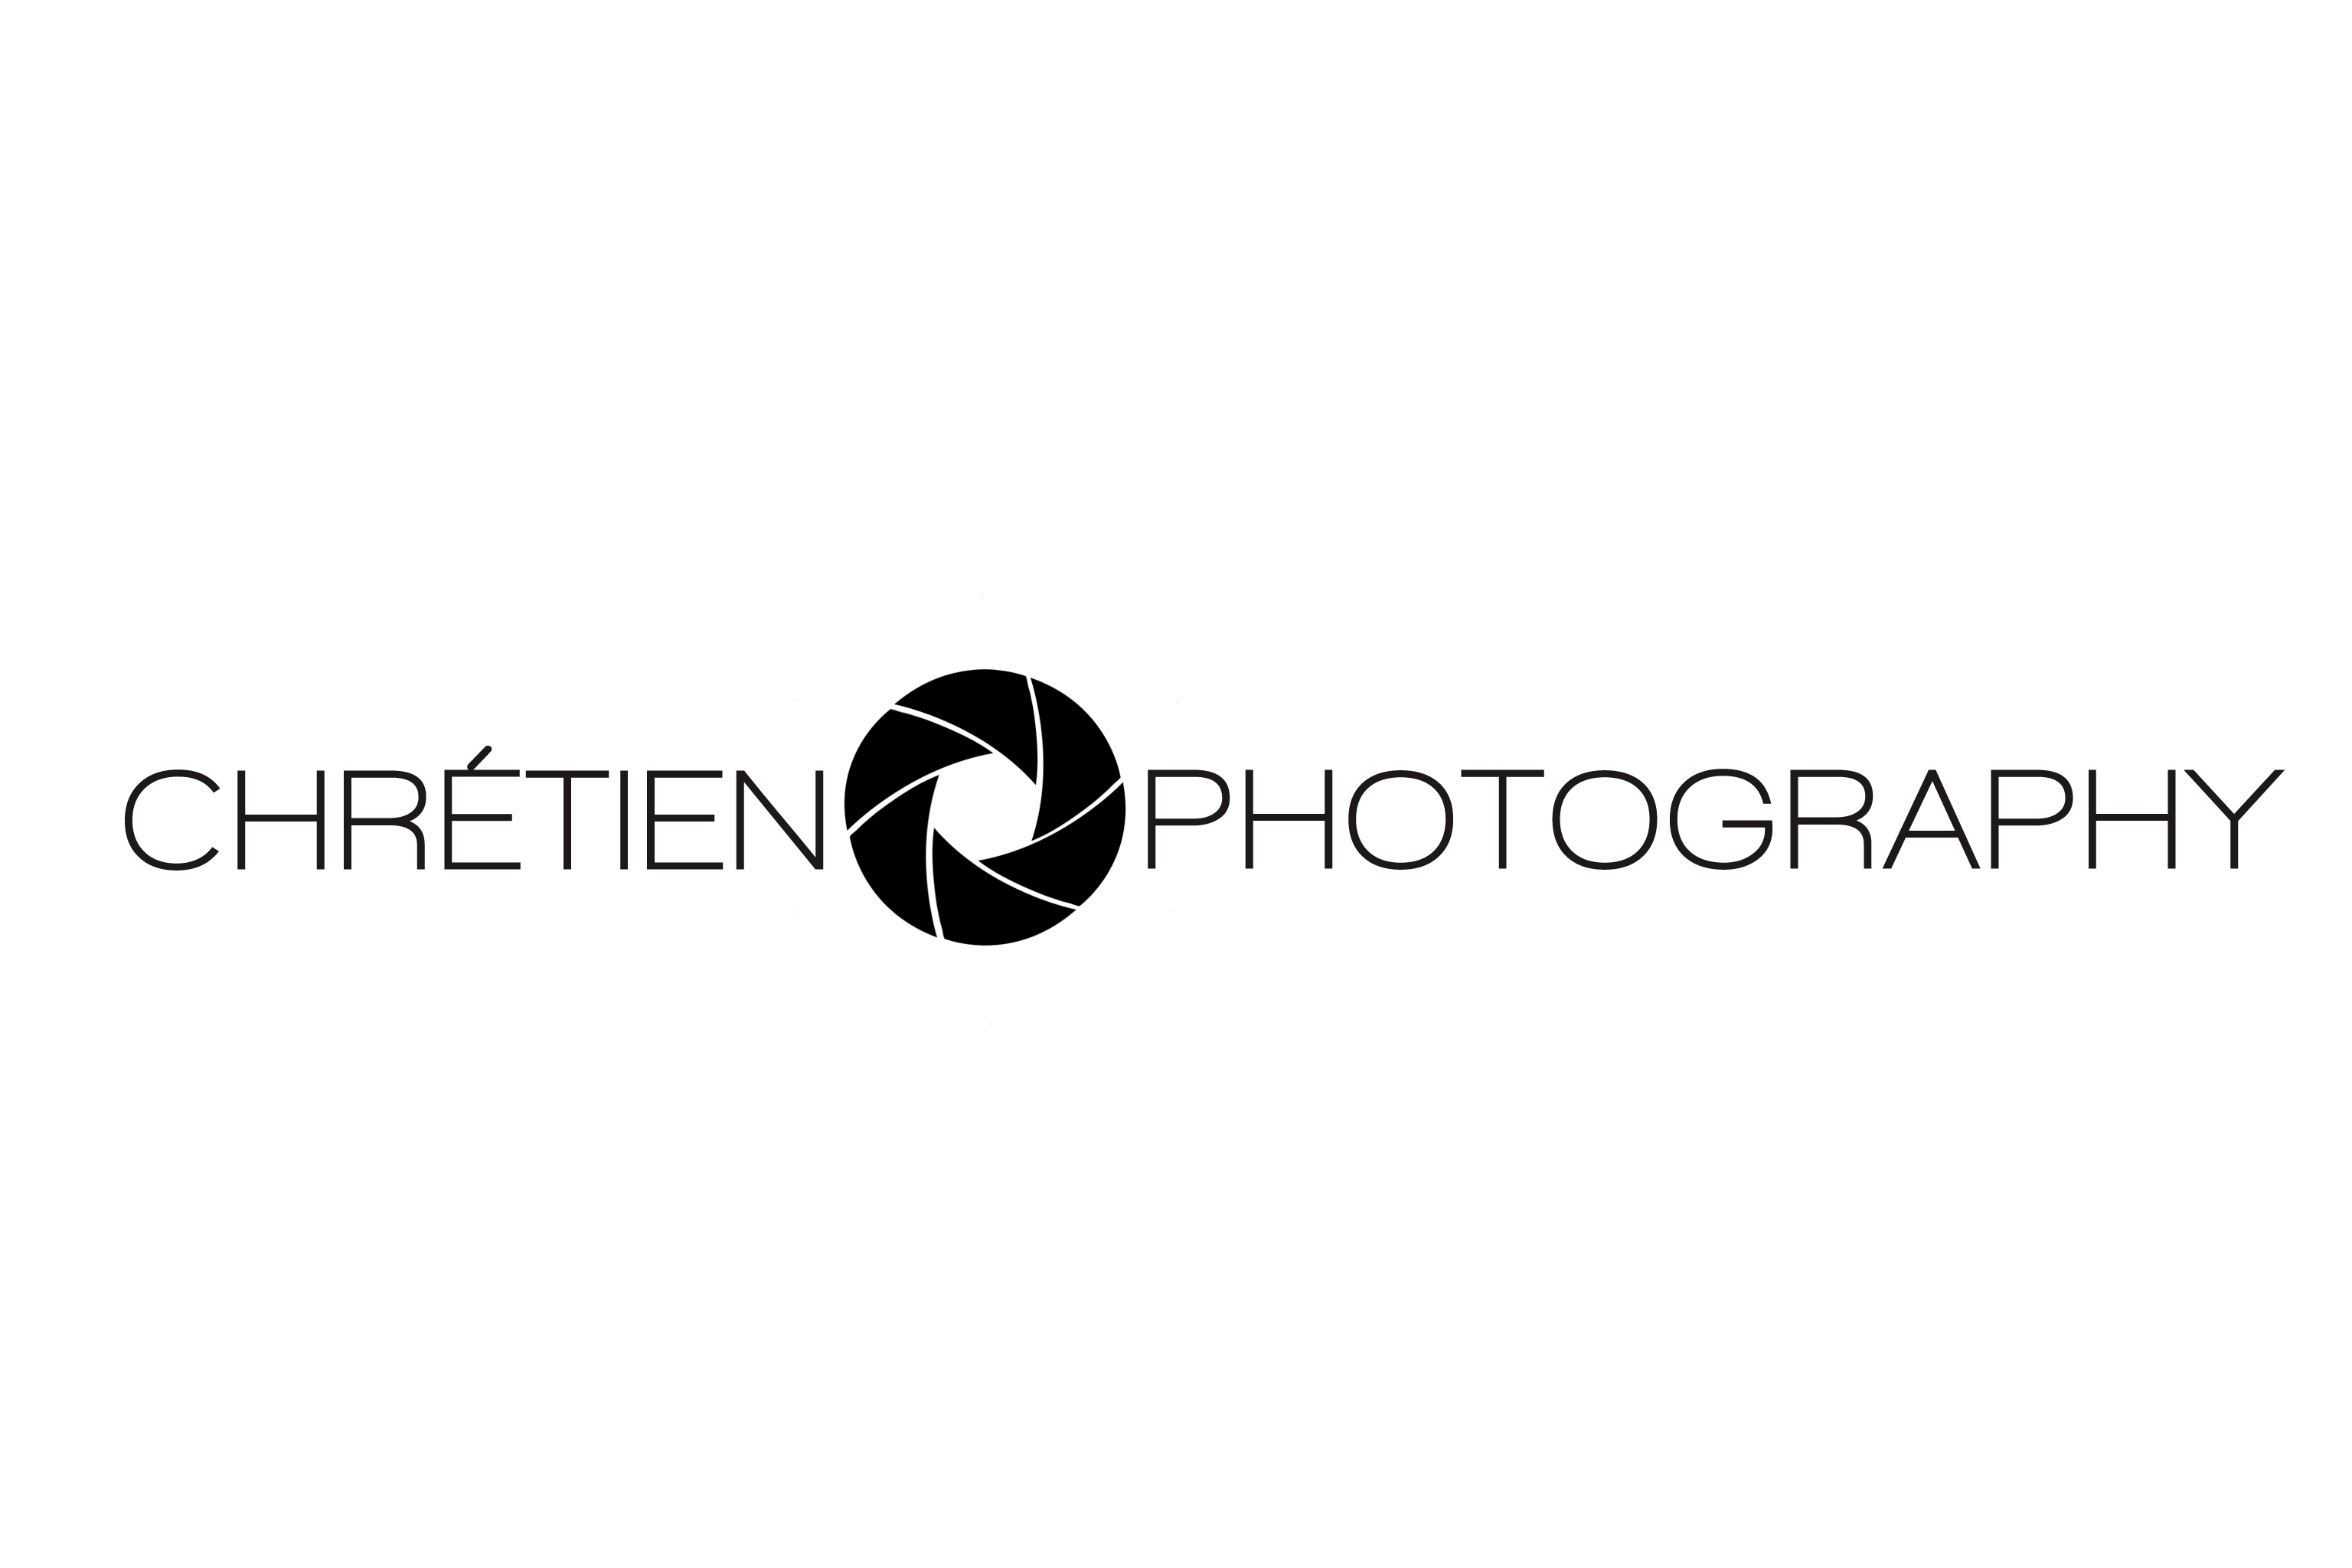 Photography Watermark Logo - Photography watermark logo design png » PNG Image